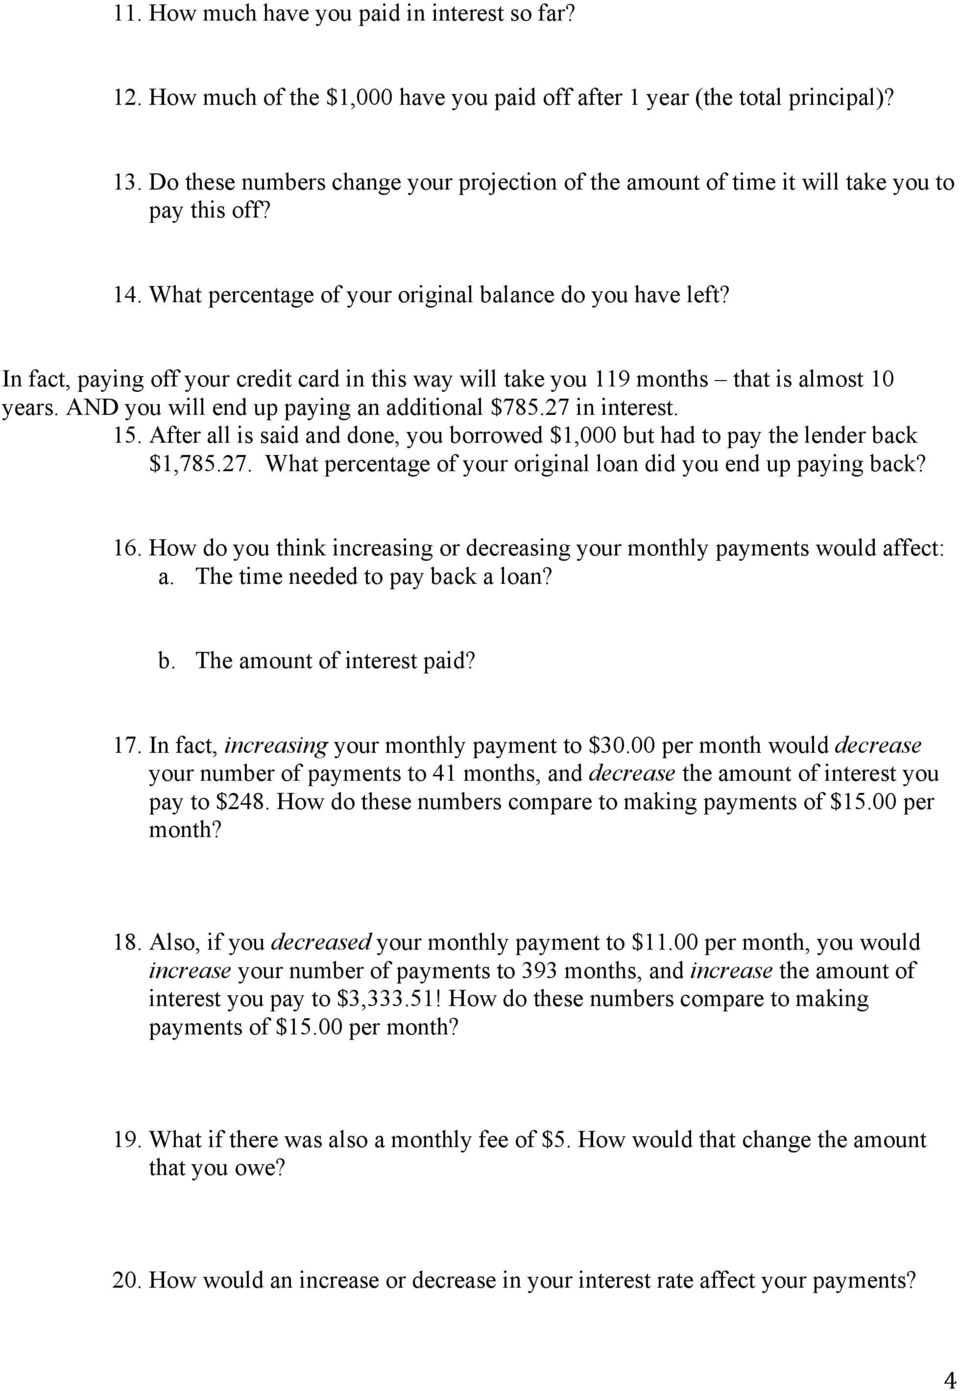 Credit Card Loans Student Worksheet Pdf Free Download